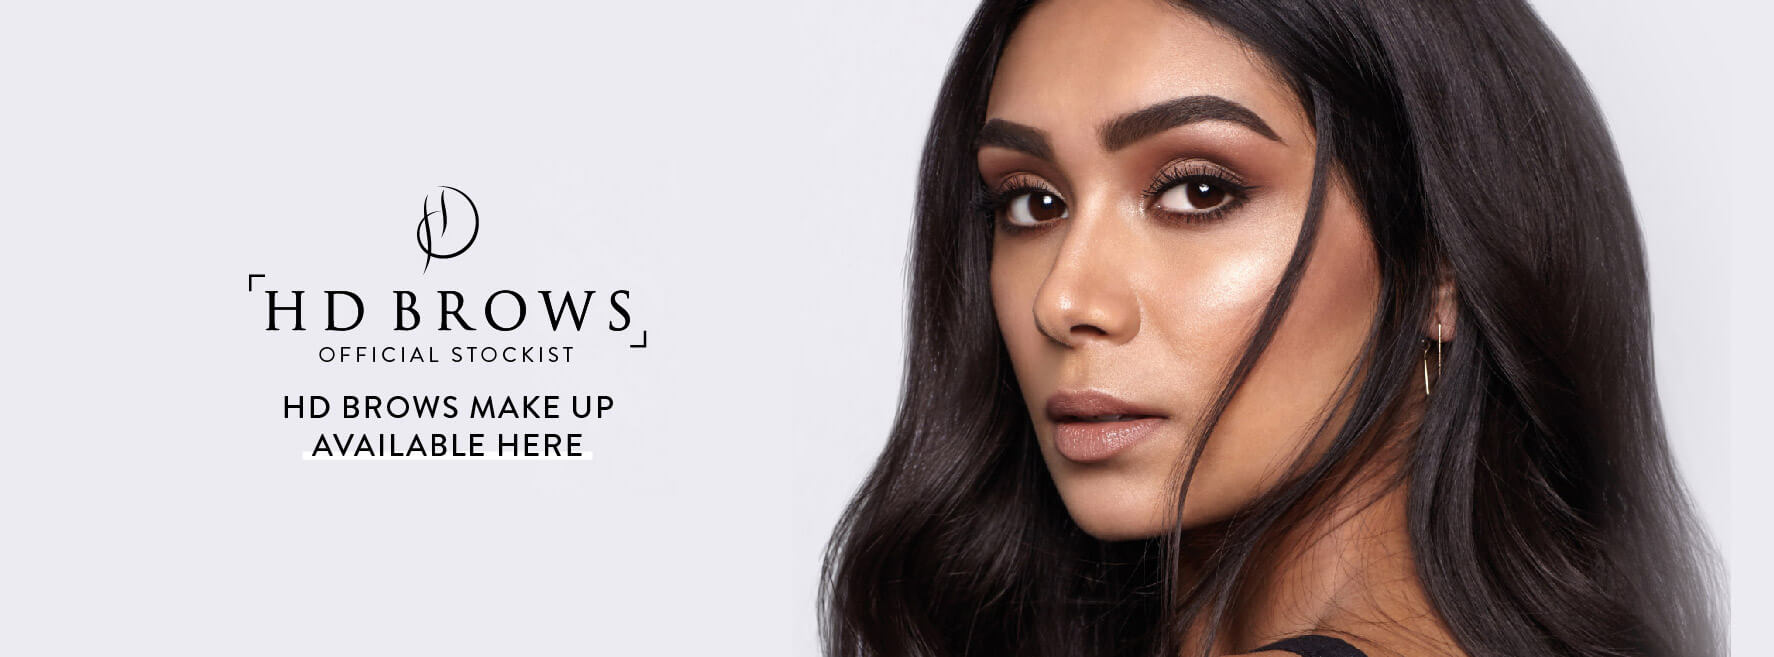 HD Brows slider advert